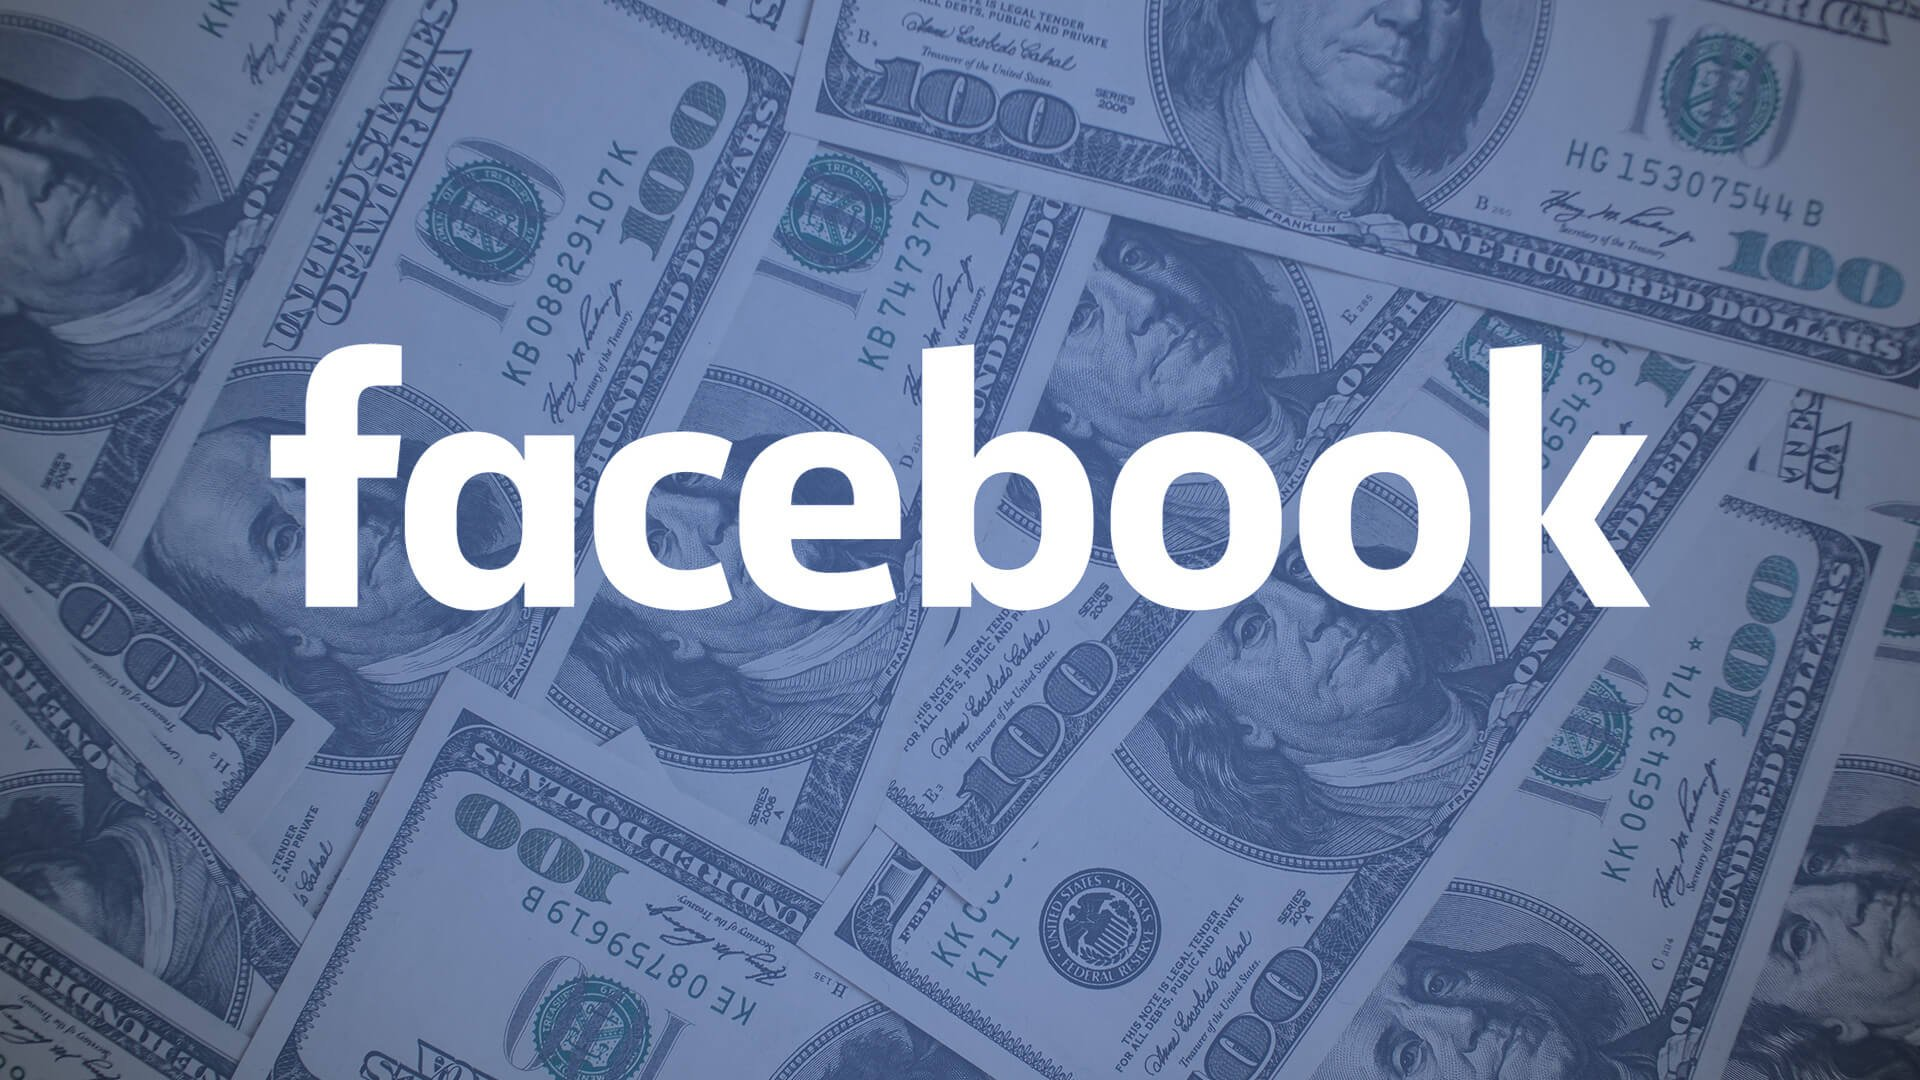 facebook, facebook news, mark zuckerberg, mark zuckerberg facebook, facebook stock